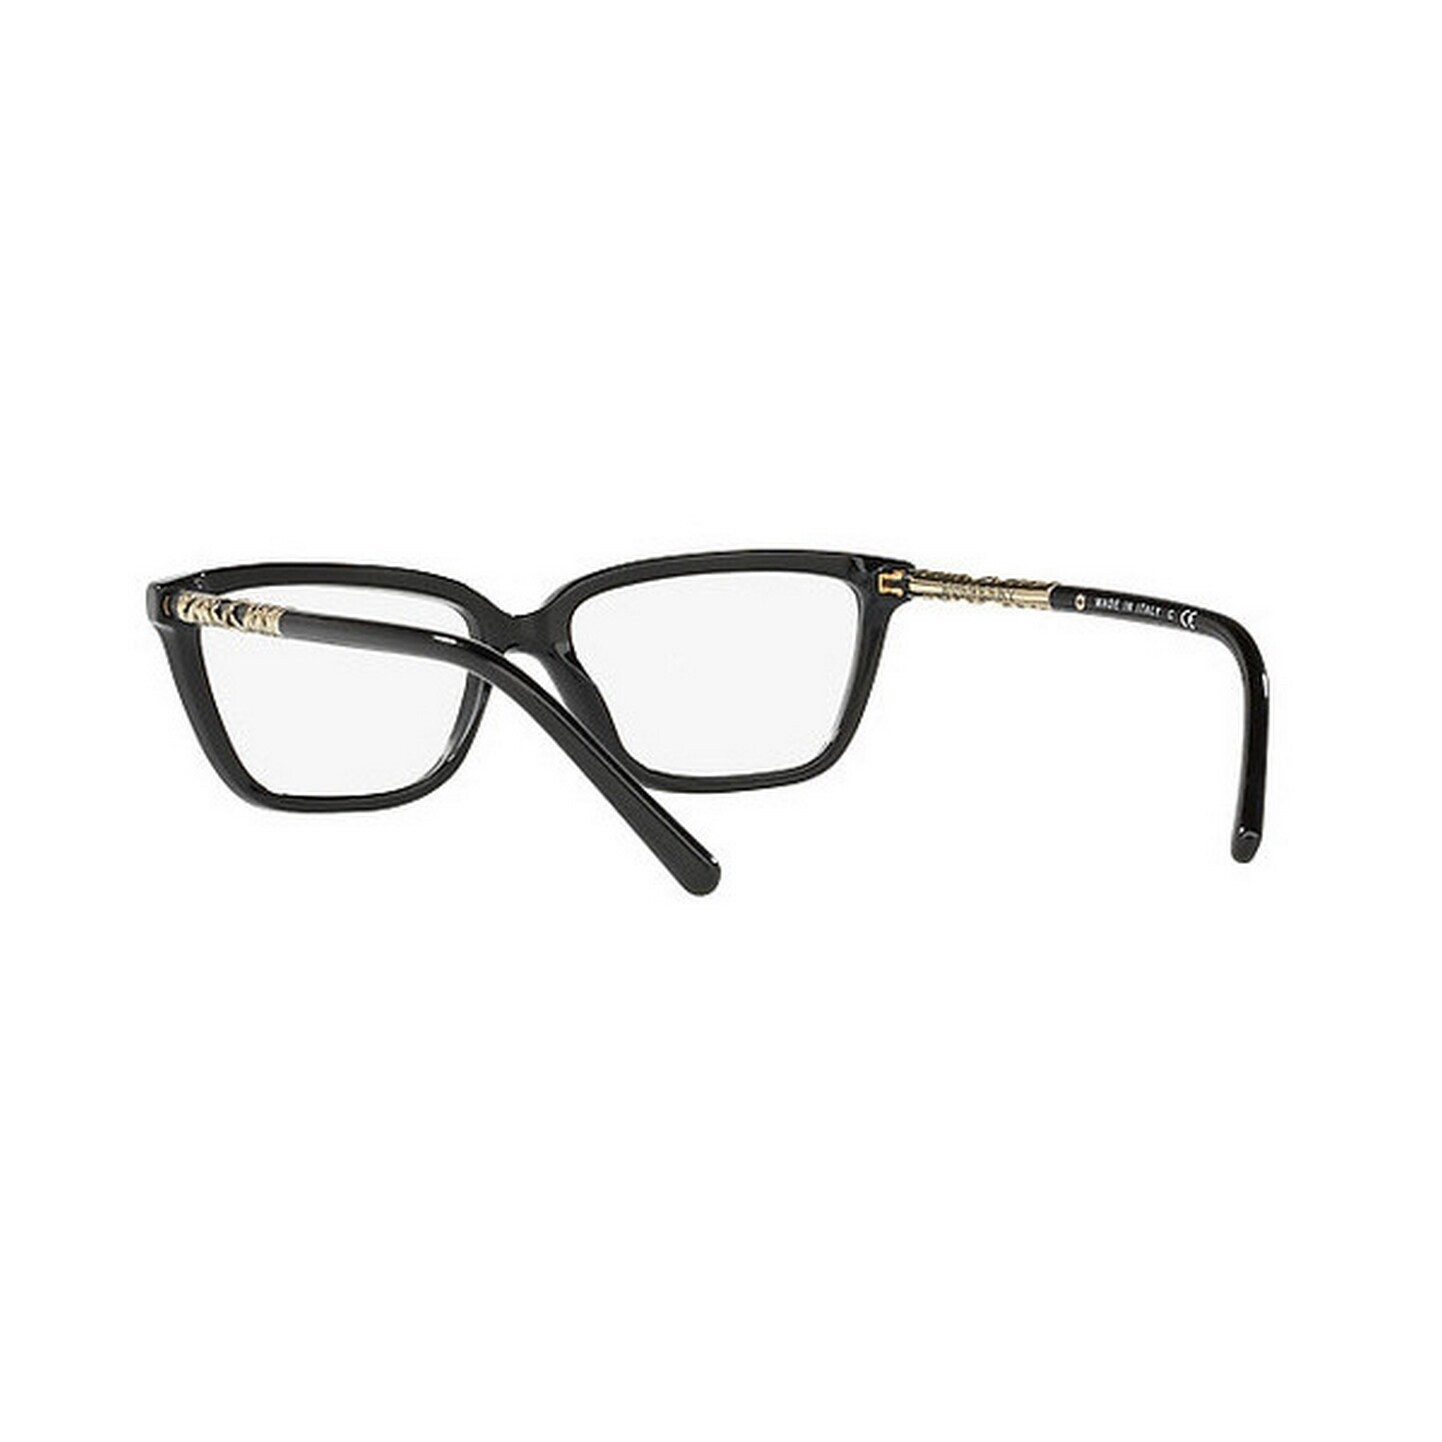 cf97bf70e2bc Shop Burberry Women s BE2246 3001 53 Rectangle Metal Plastic Black Clear  Eyeglasses - Free Shipping Today - Overstock.com - 14799521